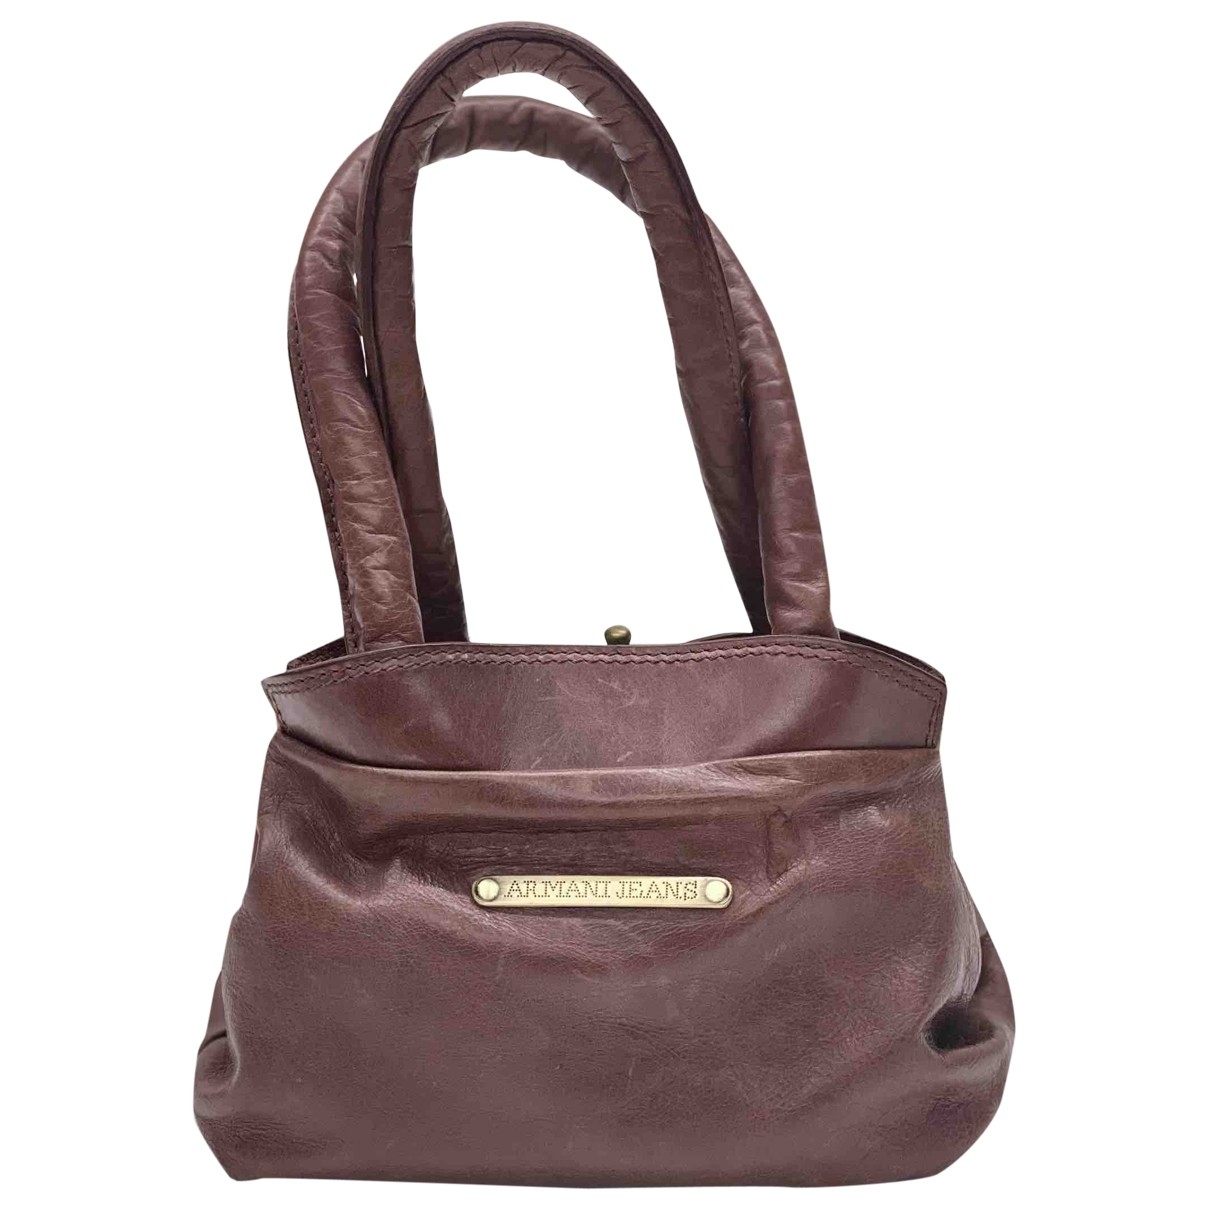 Armani Jeans \N Brown Leather handbag for Women \N